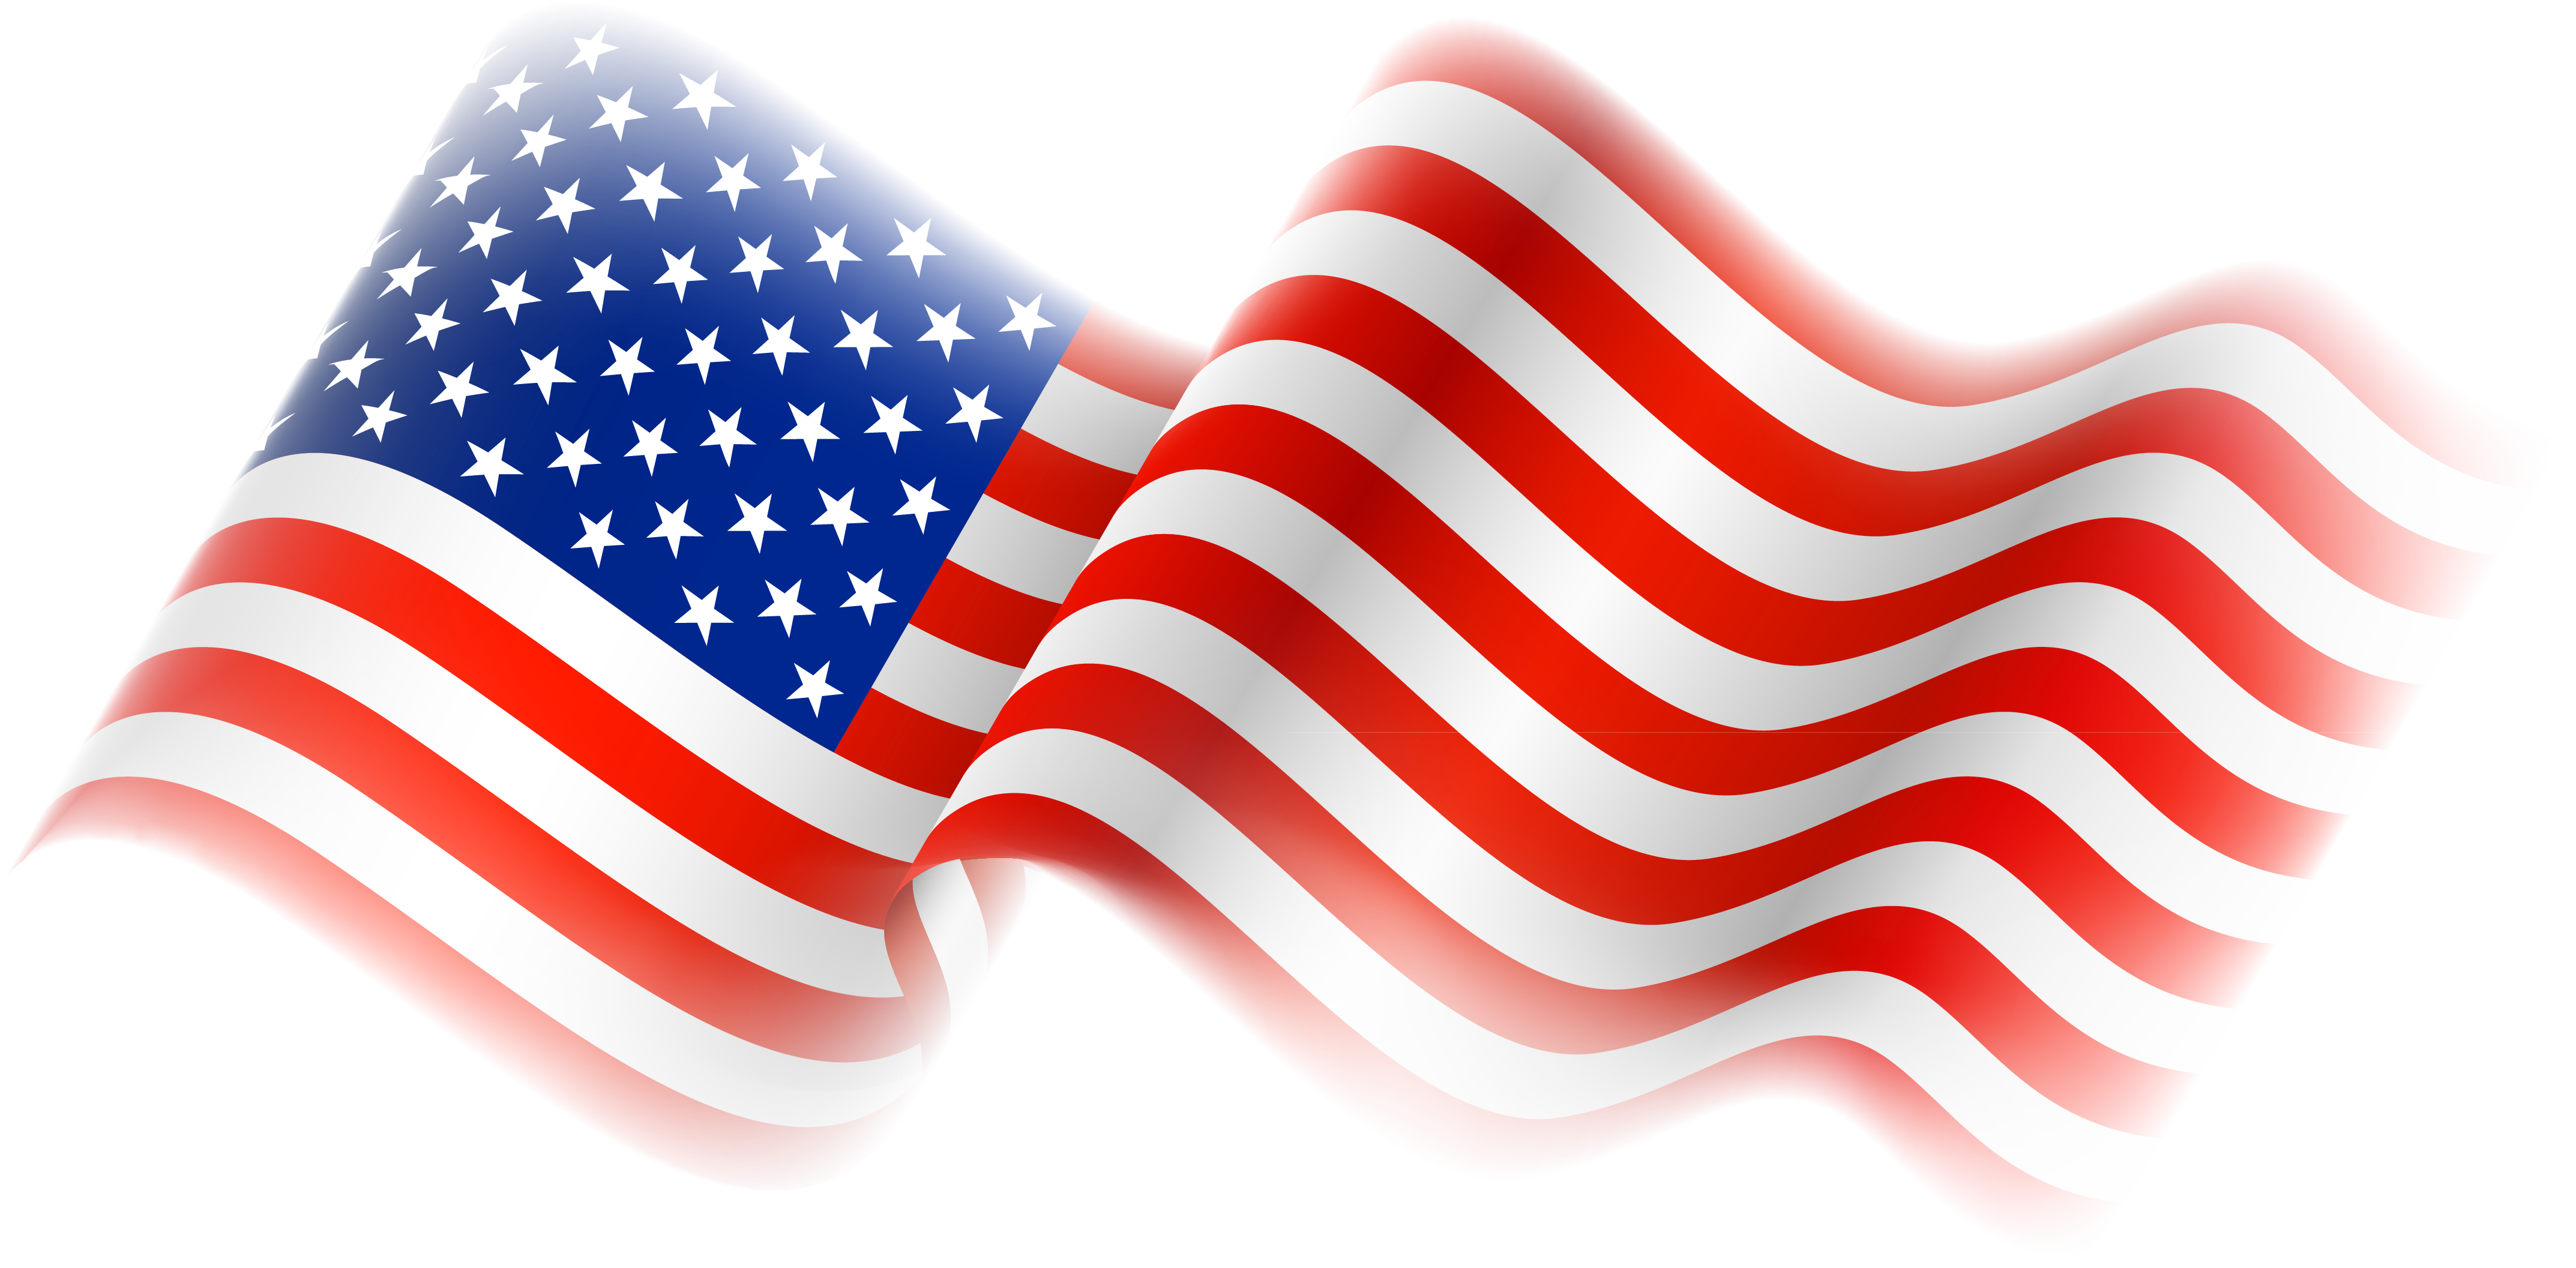 clip art of american flag animated - photo #33